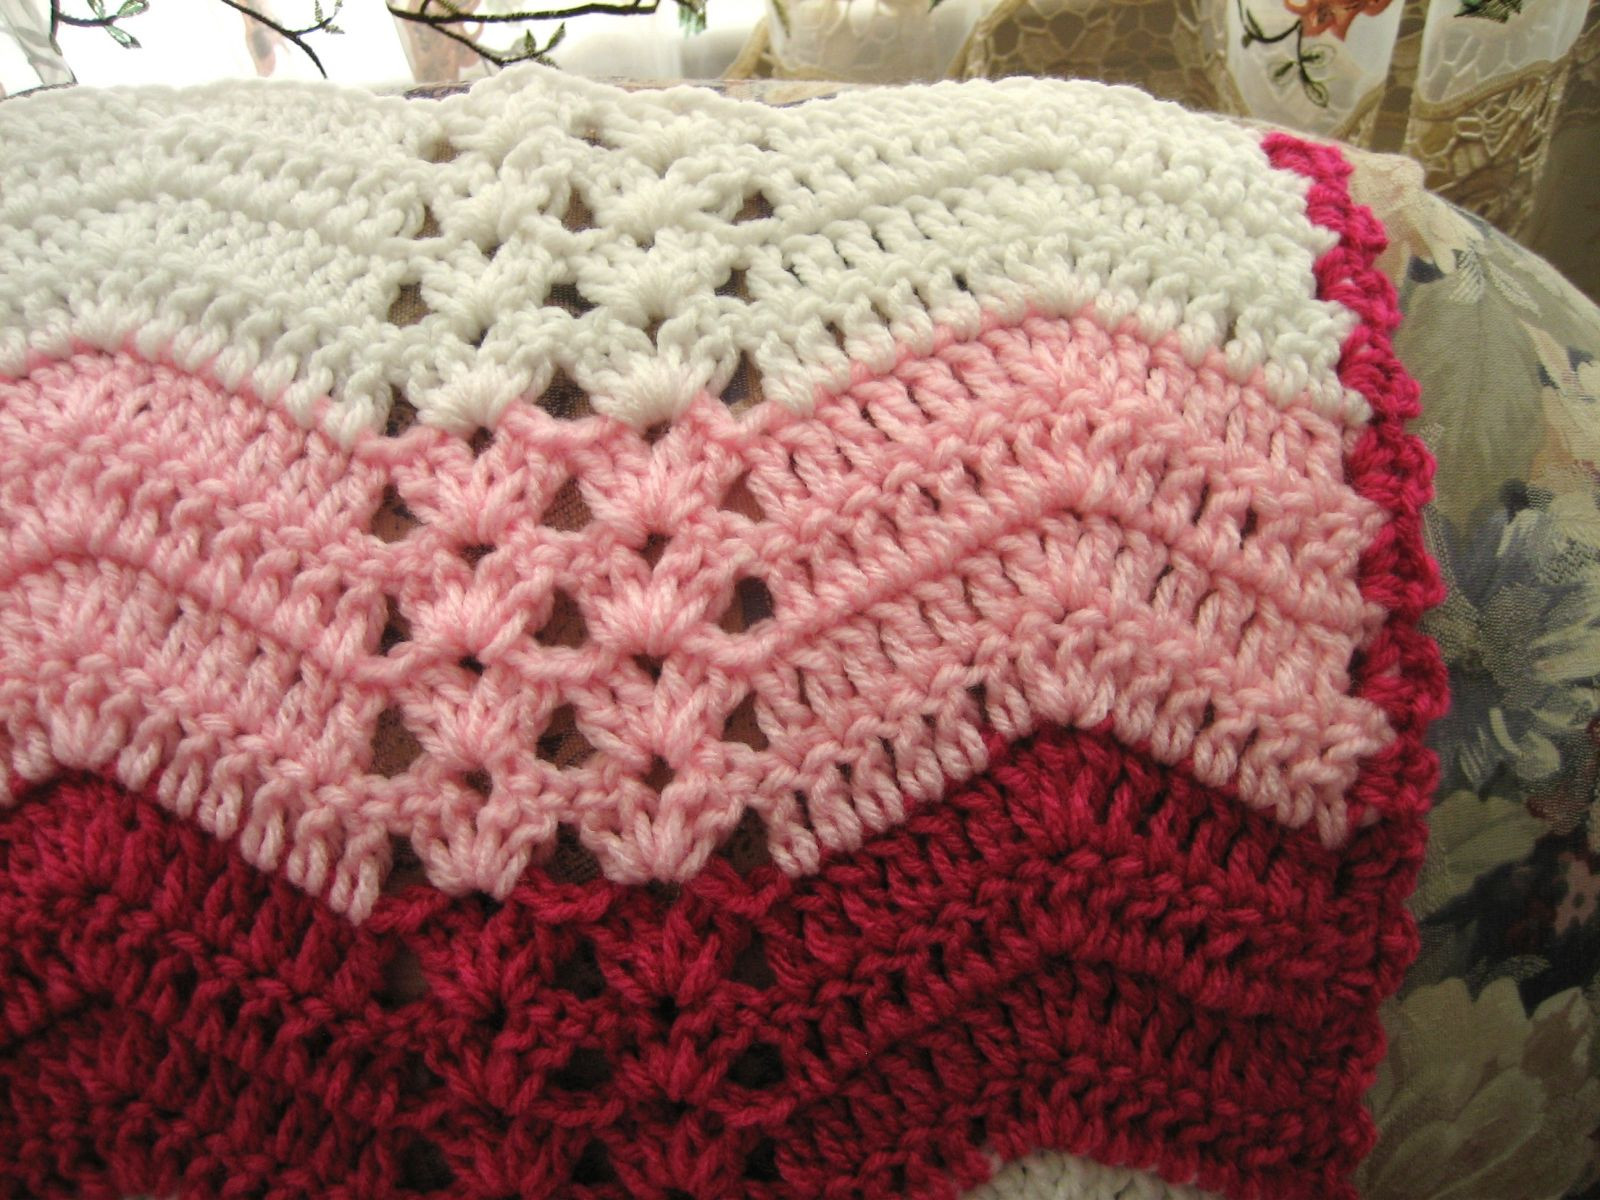 Best Of White Chocolate Strawberry Double Shell Ripple Afghan Stitch Patterns Of Beautiful 50 Pics Afghan Stitch Patterns